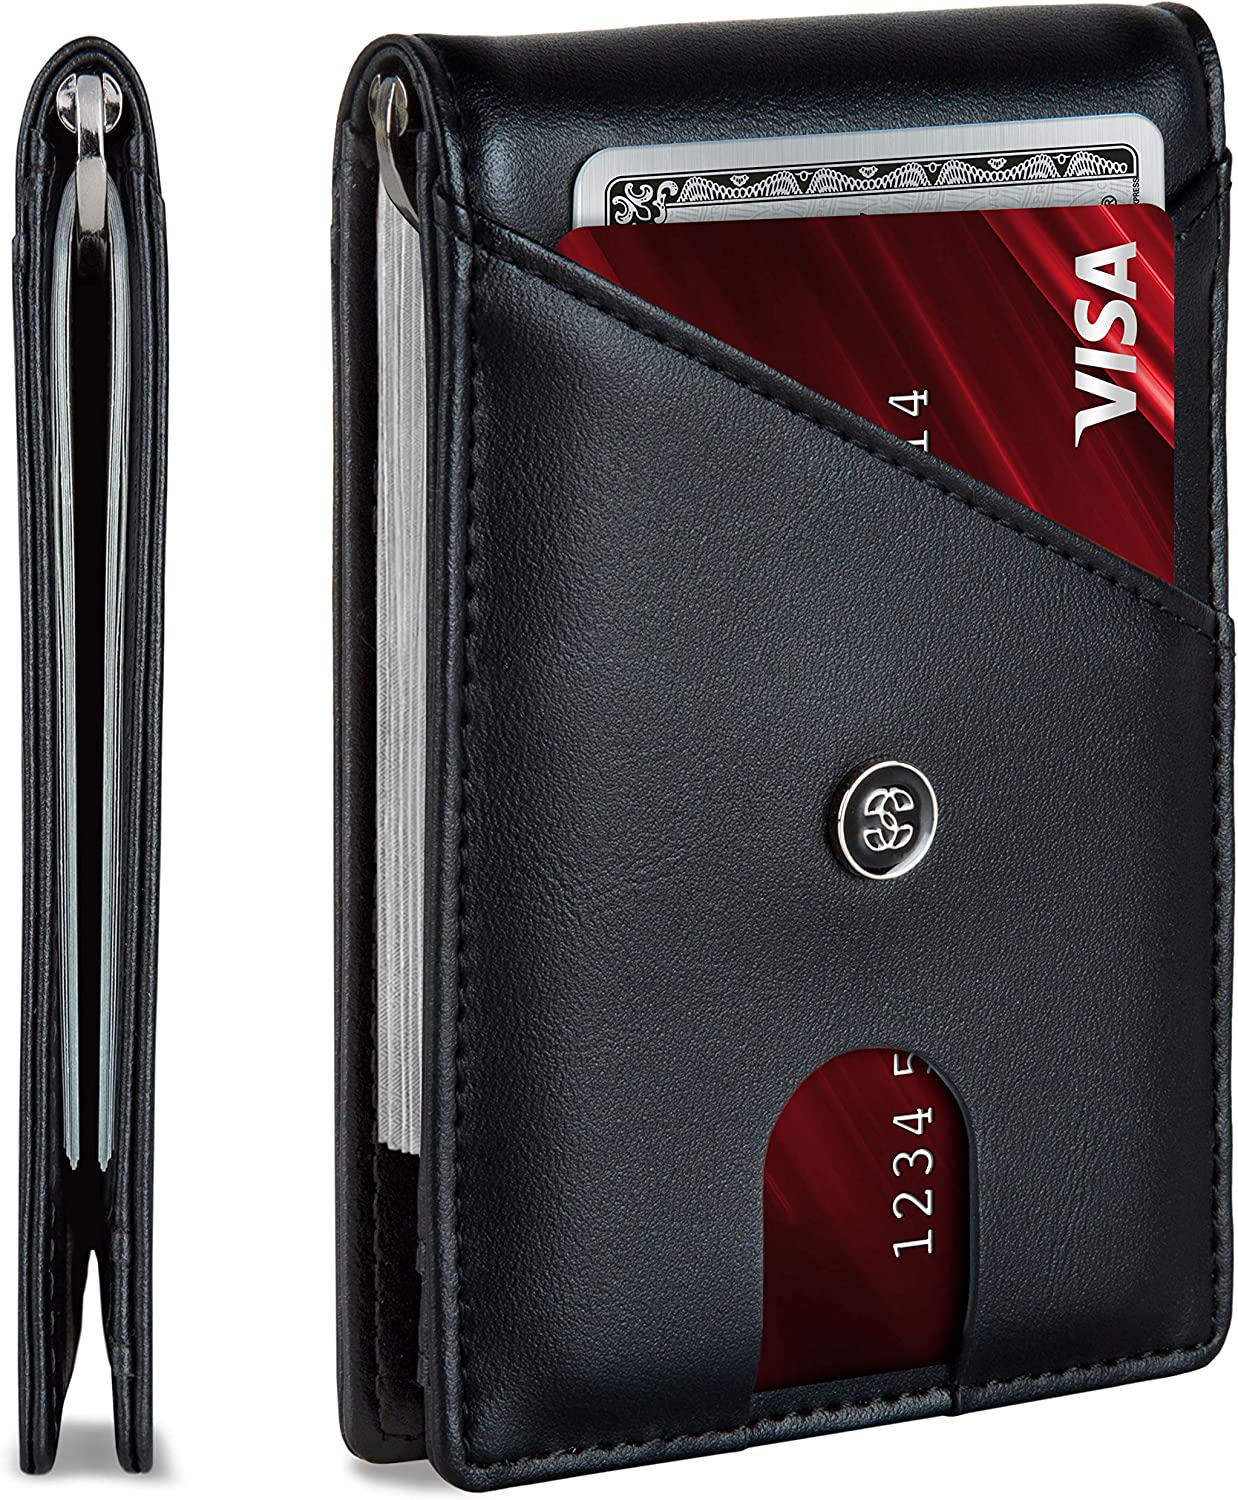 Leather Mens Wallet. Minimalist Wallet Credit Card Holder with Money Clip and RFID Wallet Protection. Slim Wallets Men Gifts